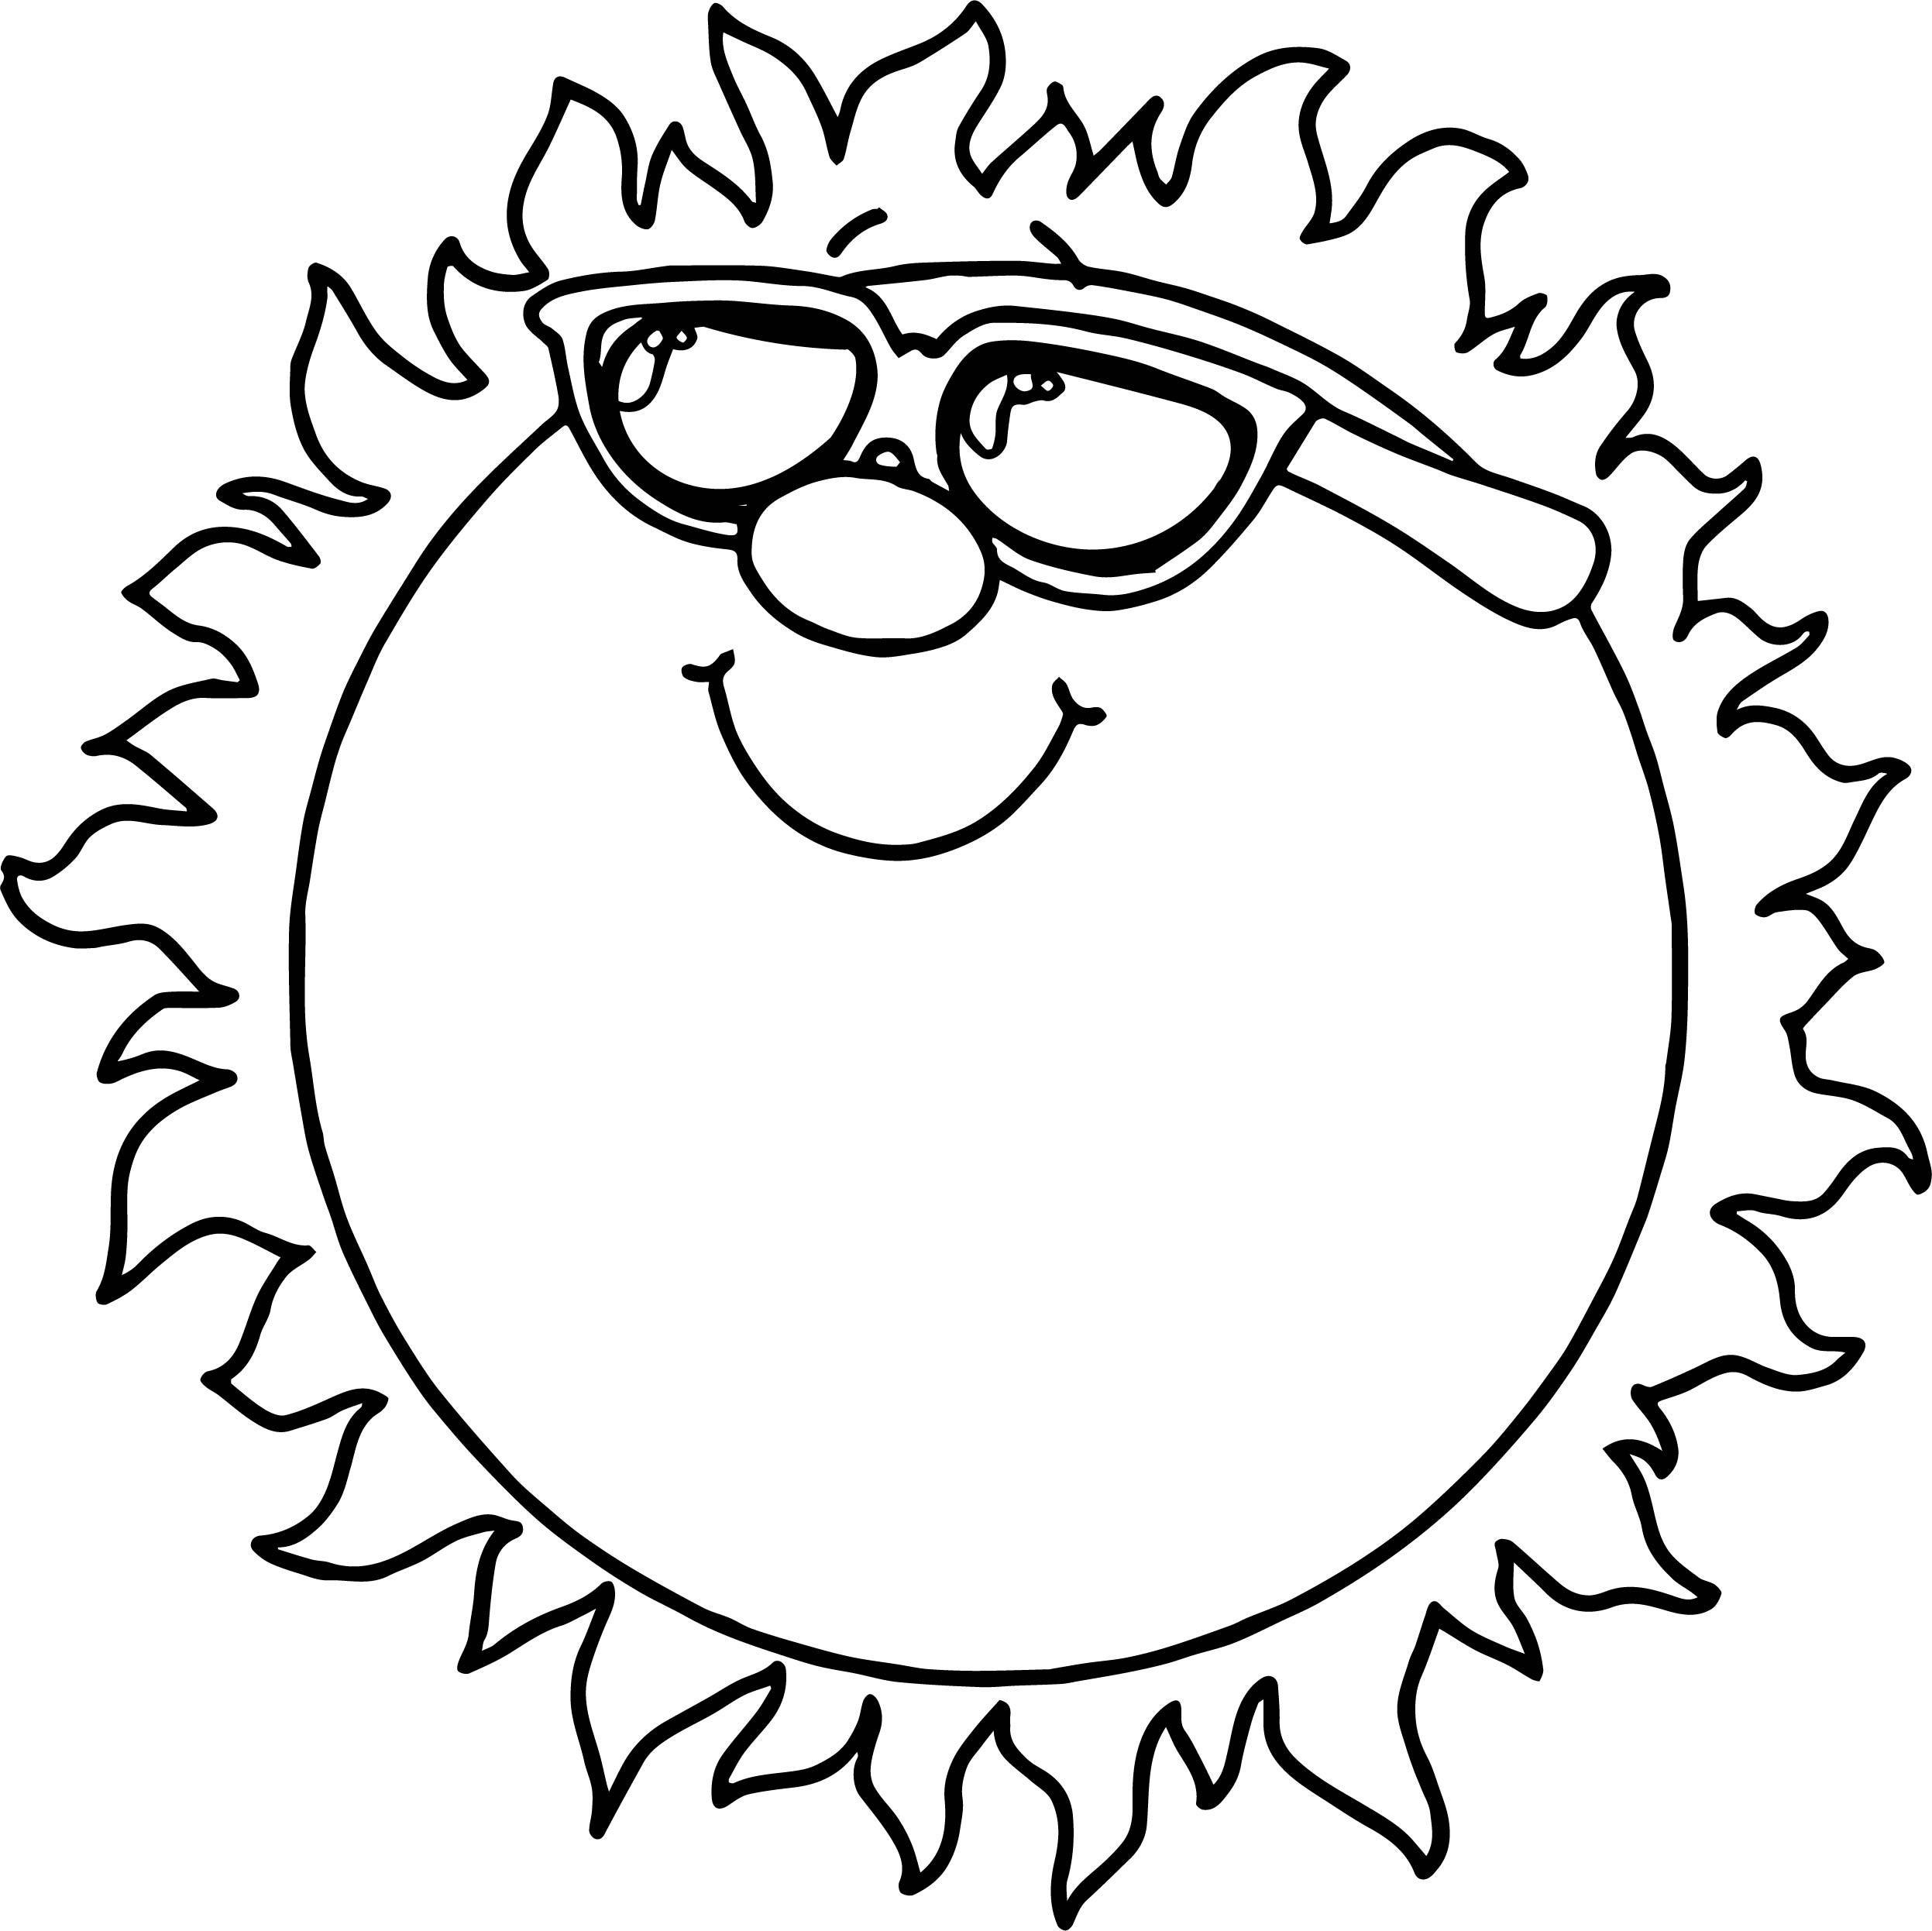 Sunshine Coloring Page At Getcolorings